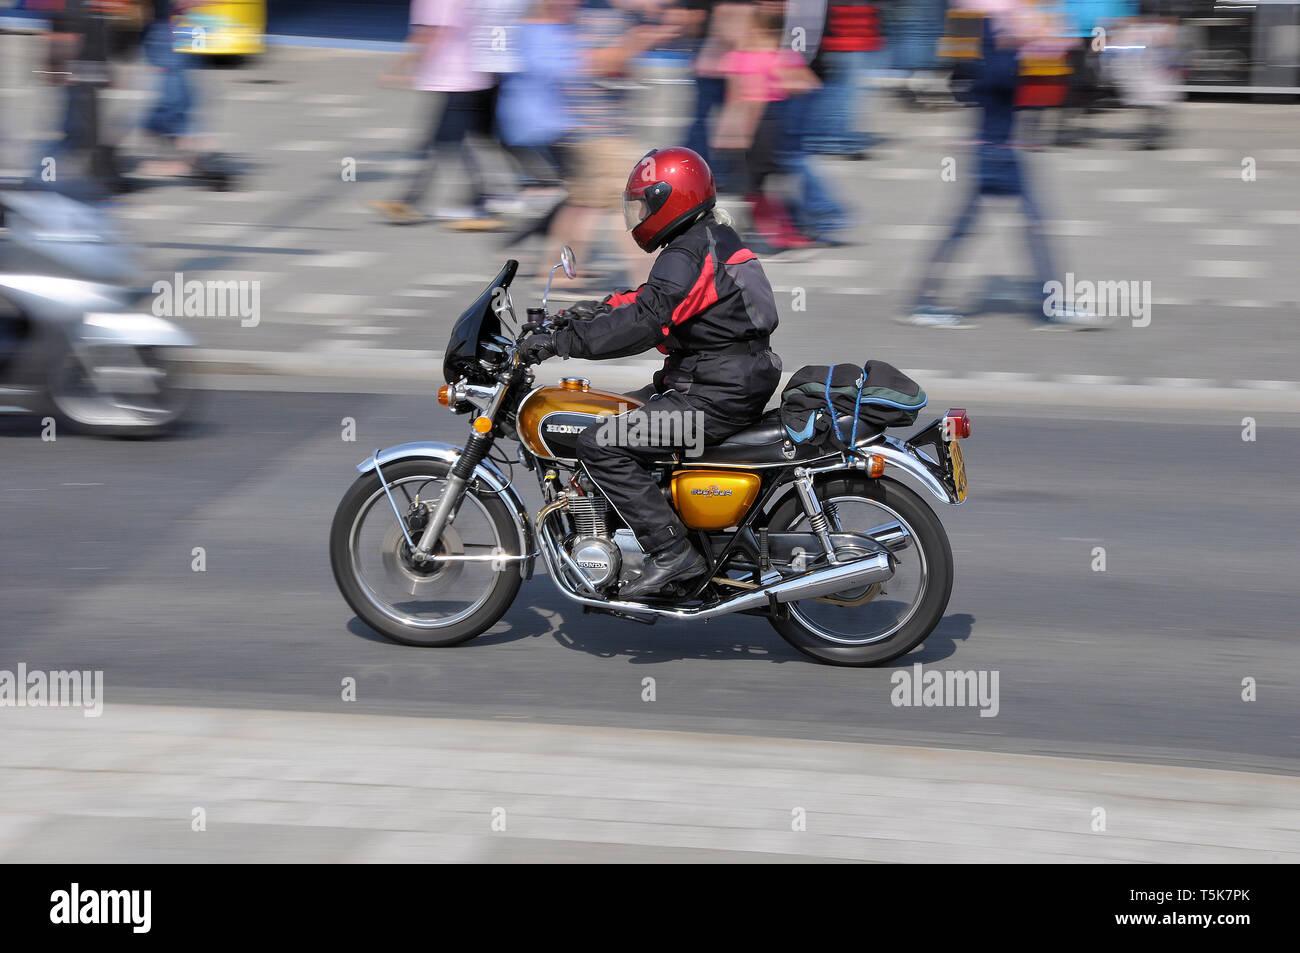 Cb500 Stock Photos Cb500 Stock Images Alamy